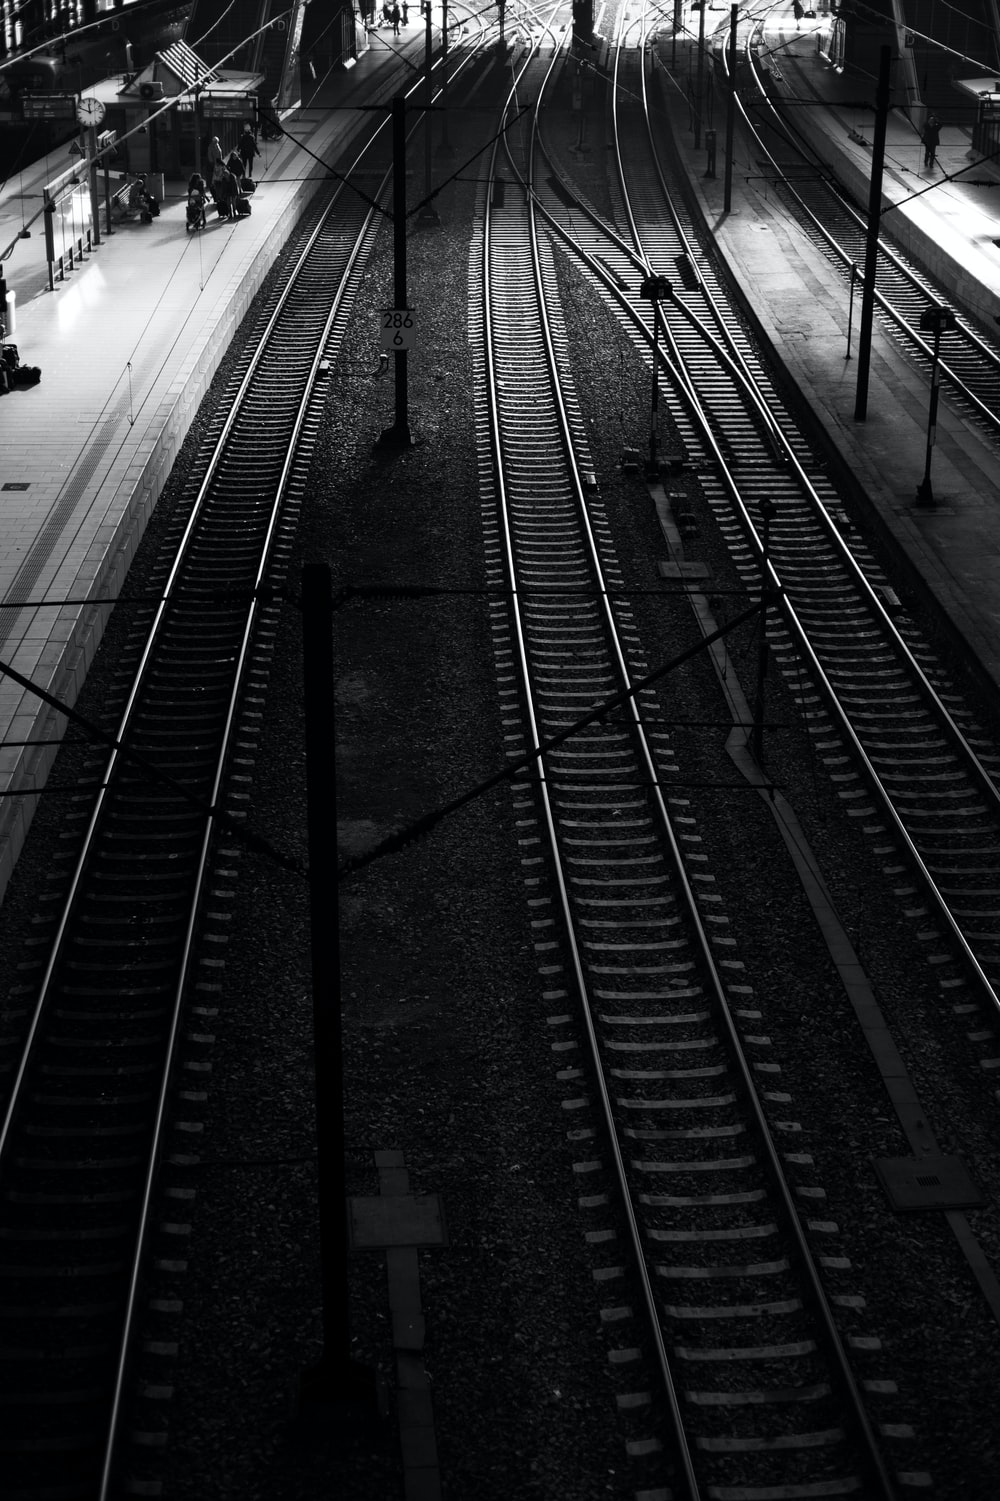 grayscale photo of railway